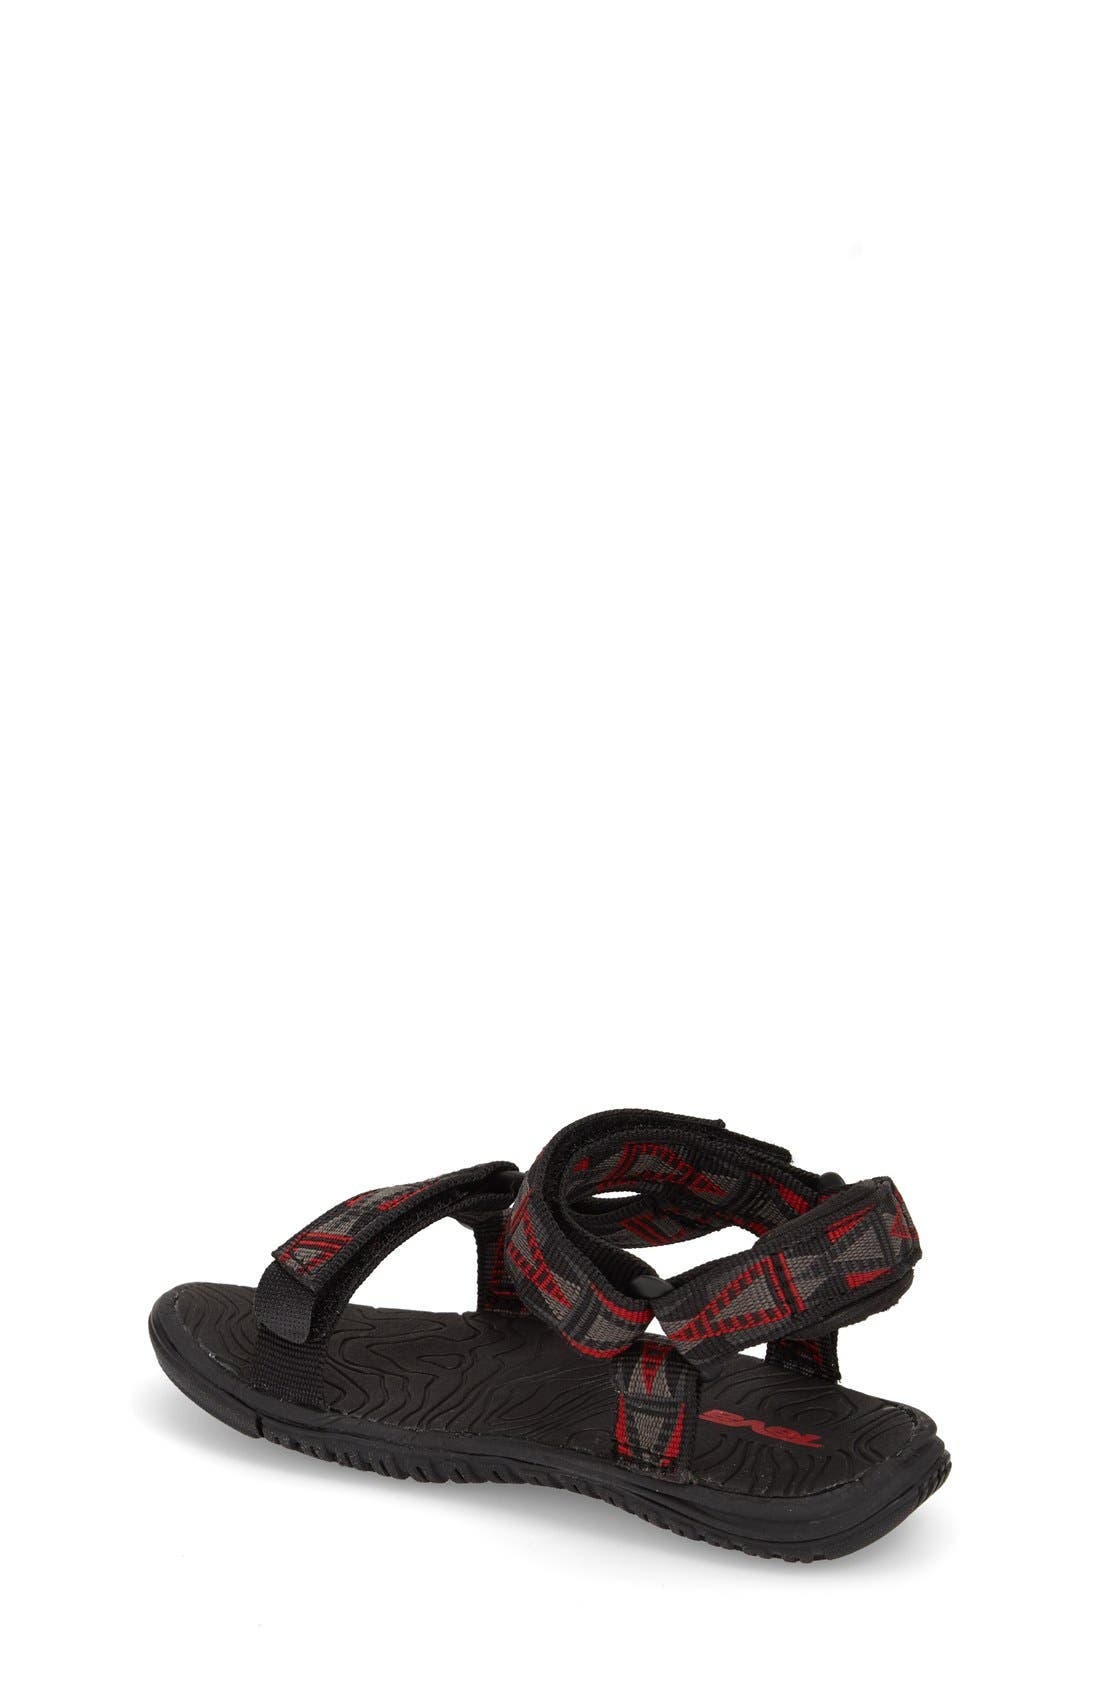 'Hurricane 3' Sport Sandal,                             Alternate thumbnail 3, color,                             003